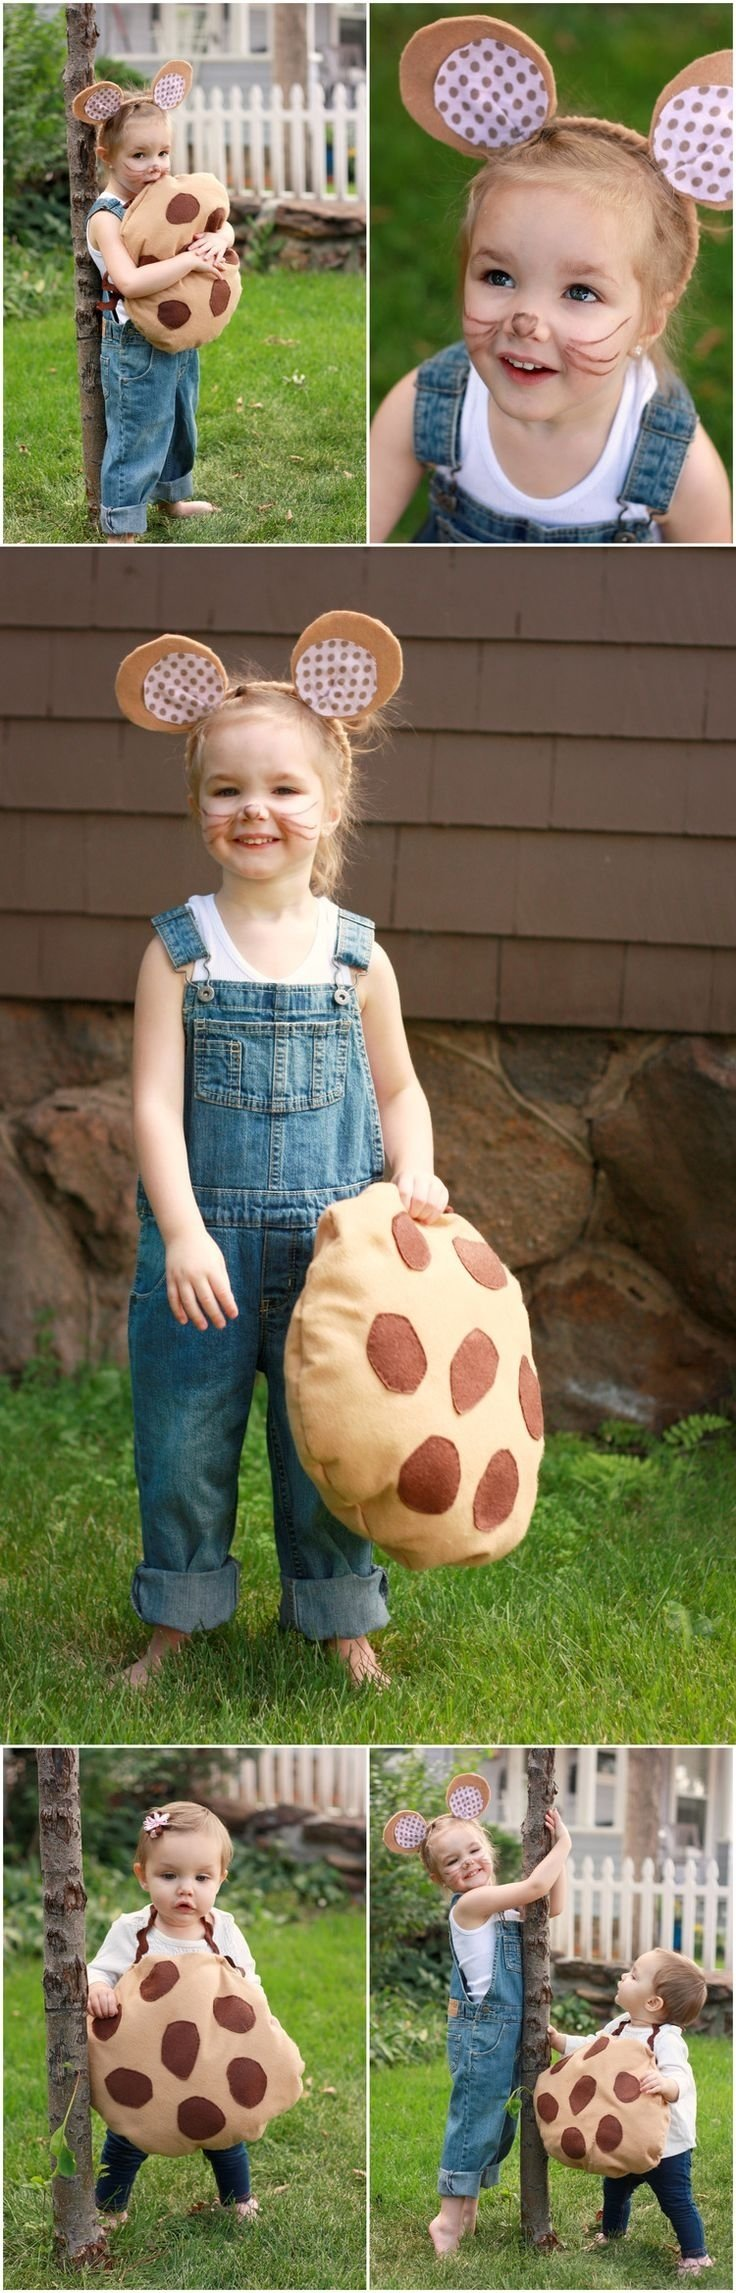 10 Stunning Unique Kids Halloween Costume Ideas 63 best storybook halloween costumes images on pinterest baby 2020